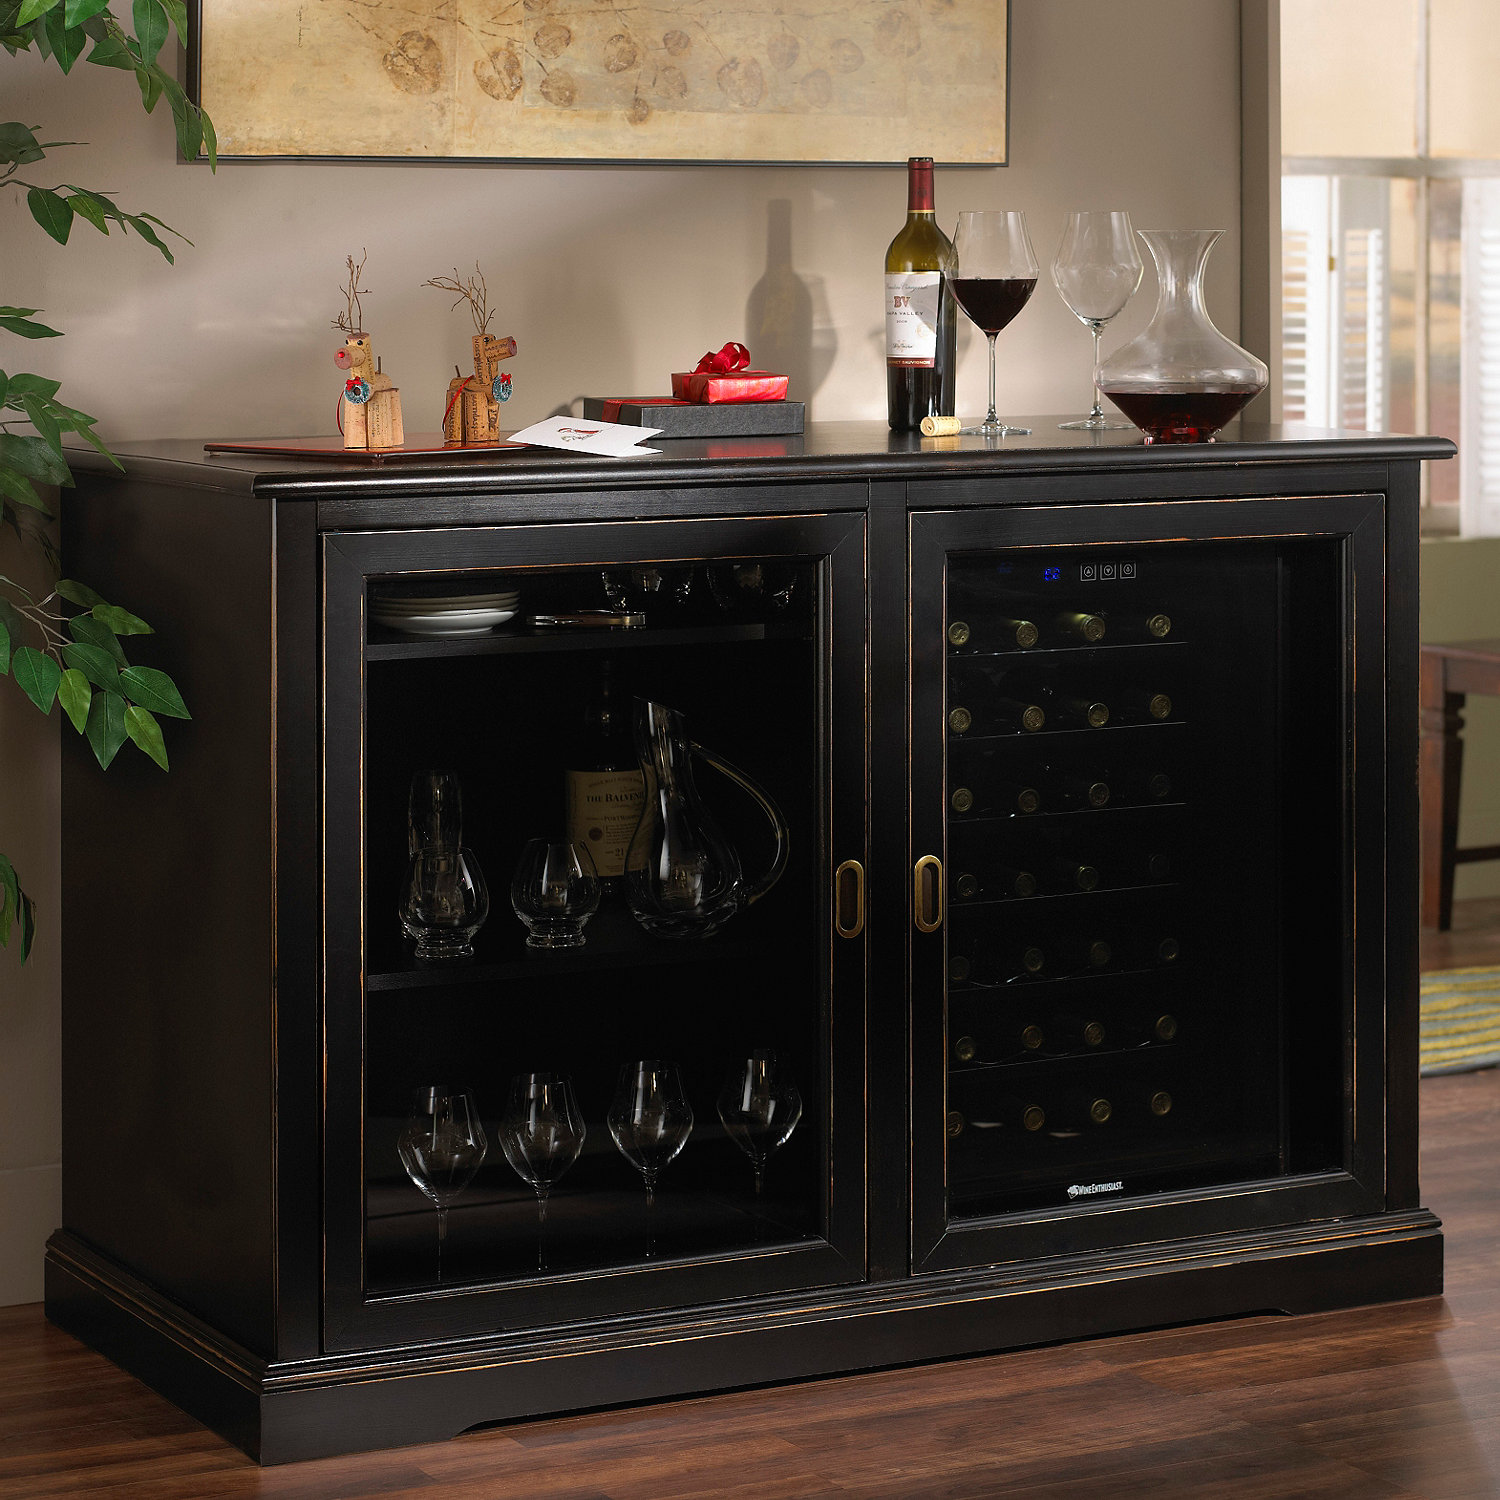 Popular Siena Mezzo Wine Credenza (Nero) with Two Wine Refrigerators  BP37